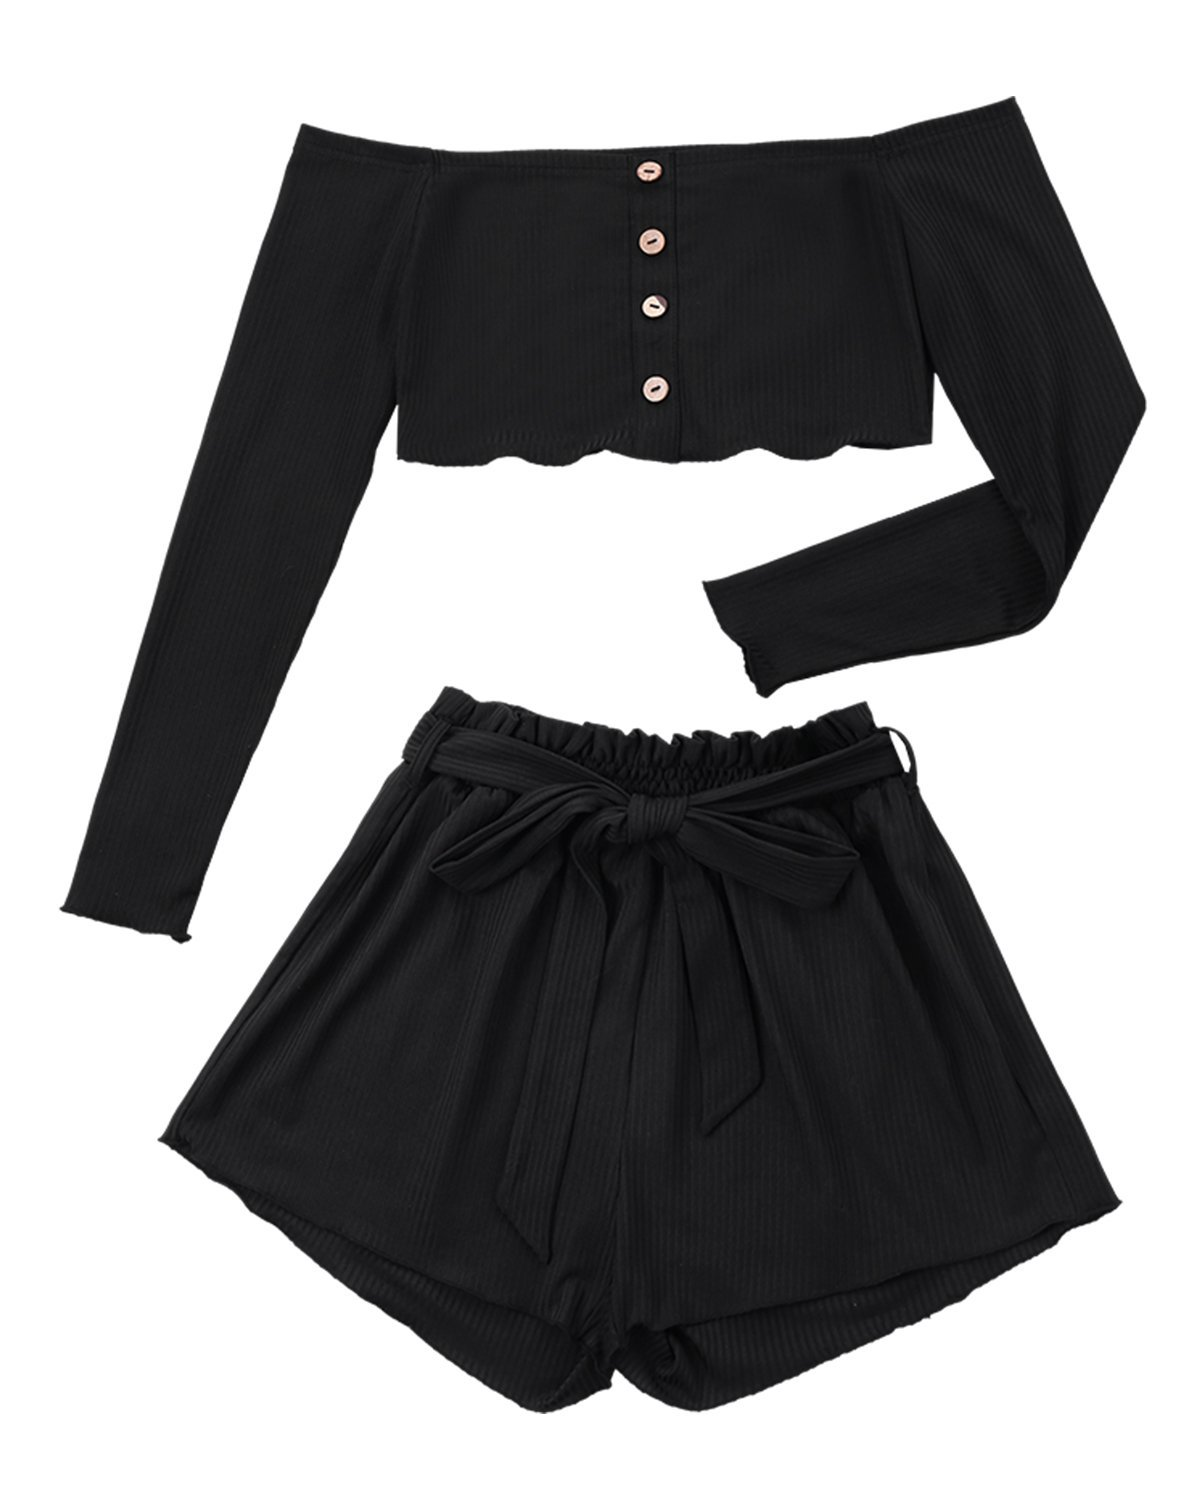 ZAFUL Women Ribbed Long Sleeve Crop Top and Wide Leg Shorts Set Button Tops(Black,S)